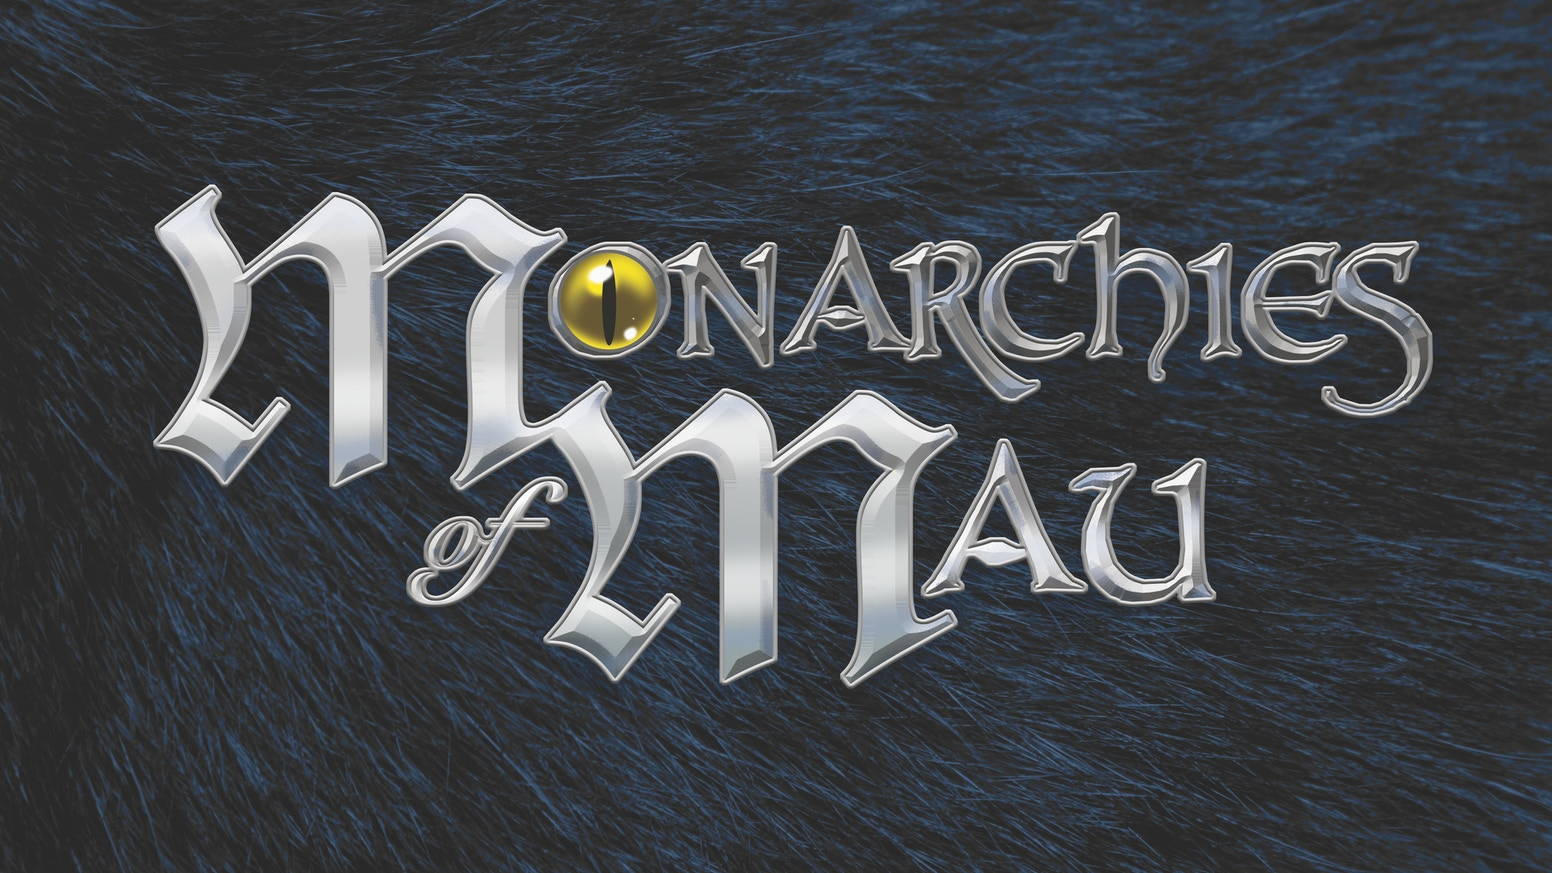 Monarchies of mau fantasy tabletop rpg by richard thomas kickstarter contribute to help us create a beautiful traditionally printed fantasy game book featuring cat monarchies buycottarizona